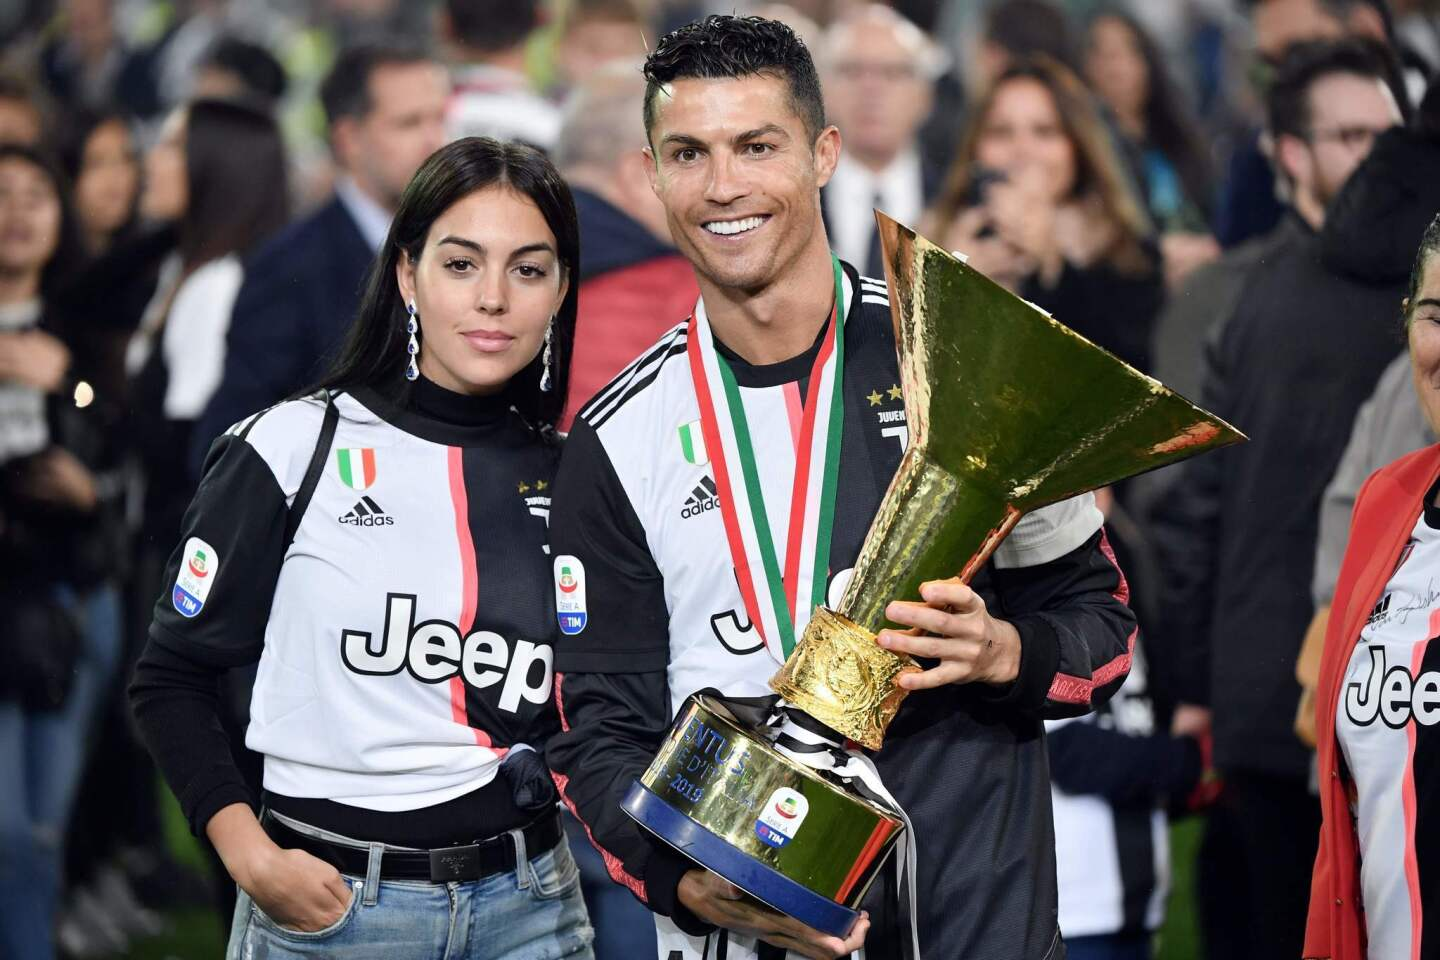 Juventus' Portuguese forward Cristiano Ronaldo holds the Italian Champion's trophy next to his wife Georgina at the end of the Italian Serie A football match Juventus vs Atalanta on May 19, 2019 at the Allianz stadium in Turin. (Photo by Marco Bertorello / AFP)MARCO BERTORELLO/AFP/Getty Images ** OUTS - ELSENT, FPG, CM - OUTS * NM, PH, VA if sourced by CT, LA or MoD **